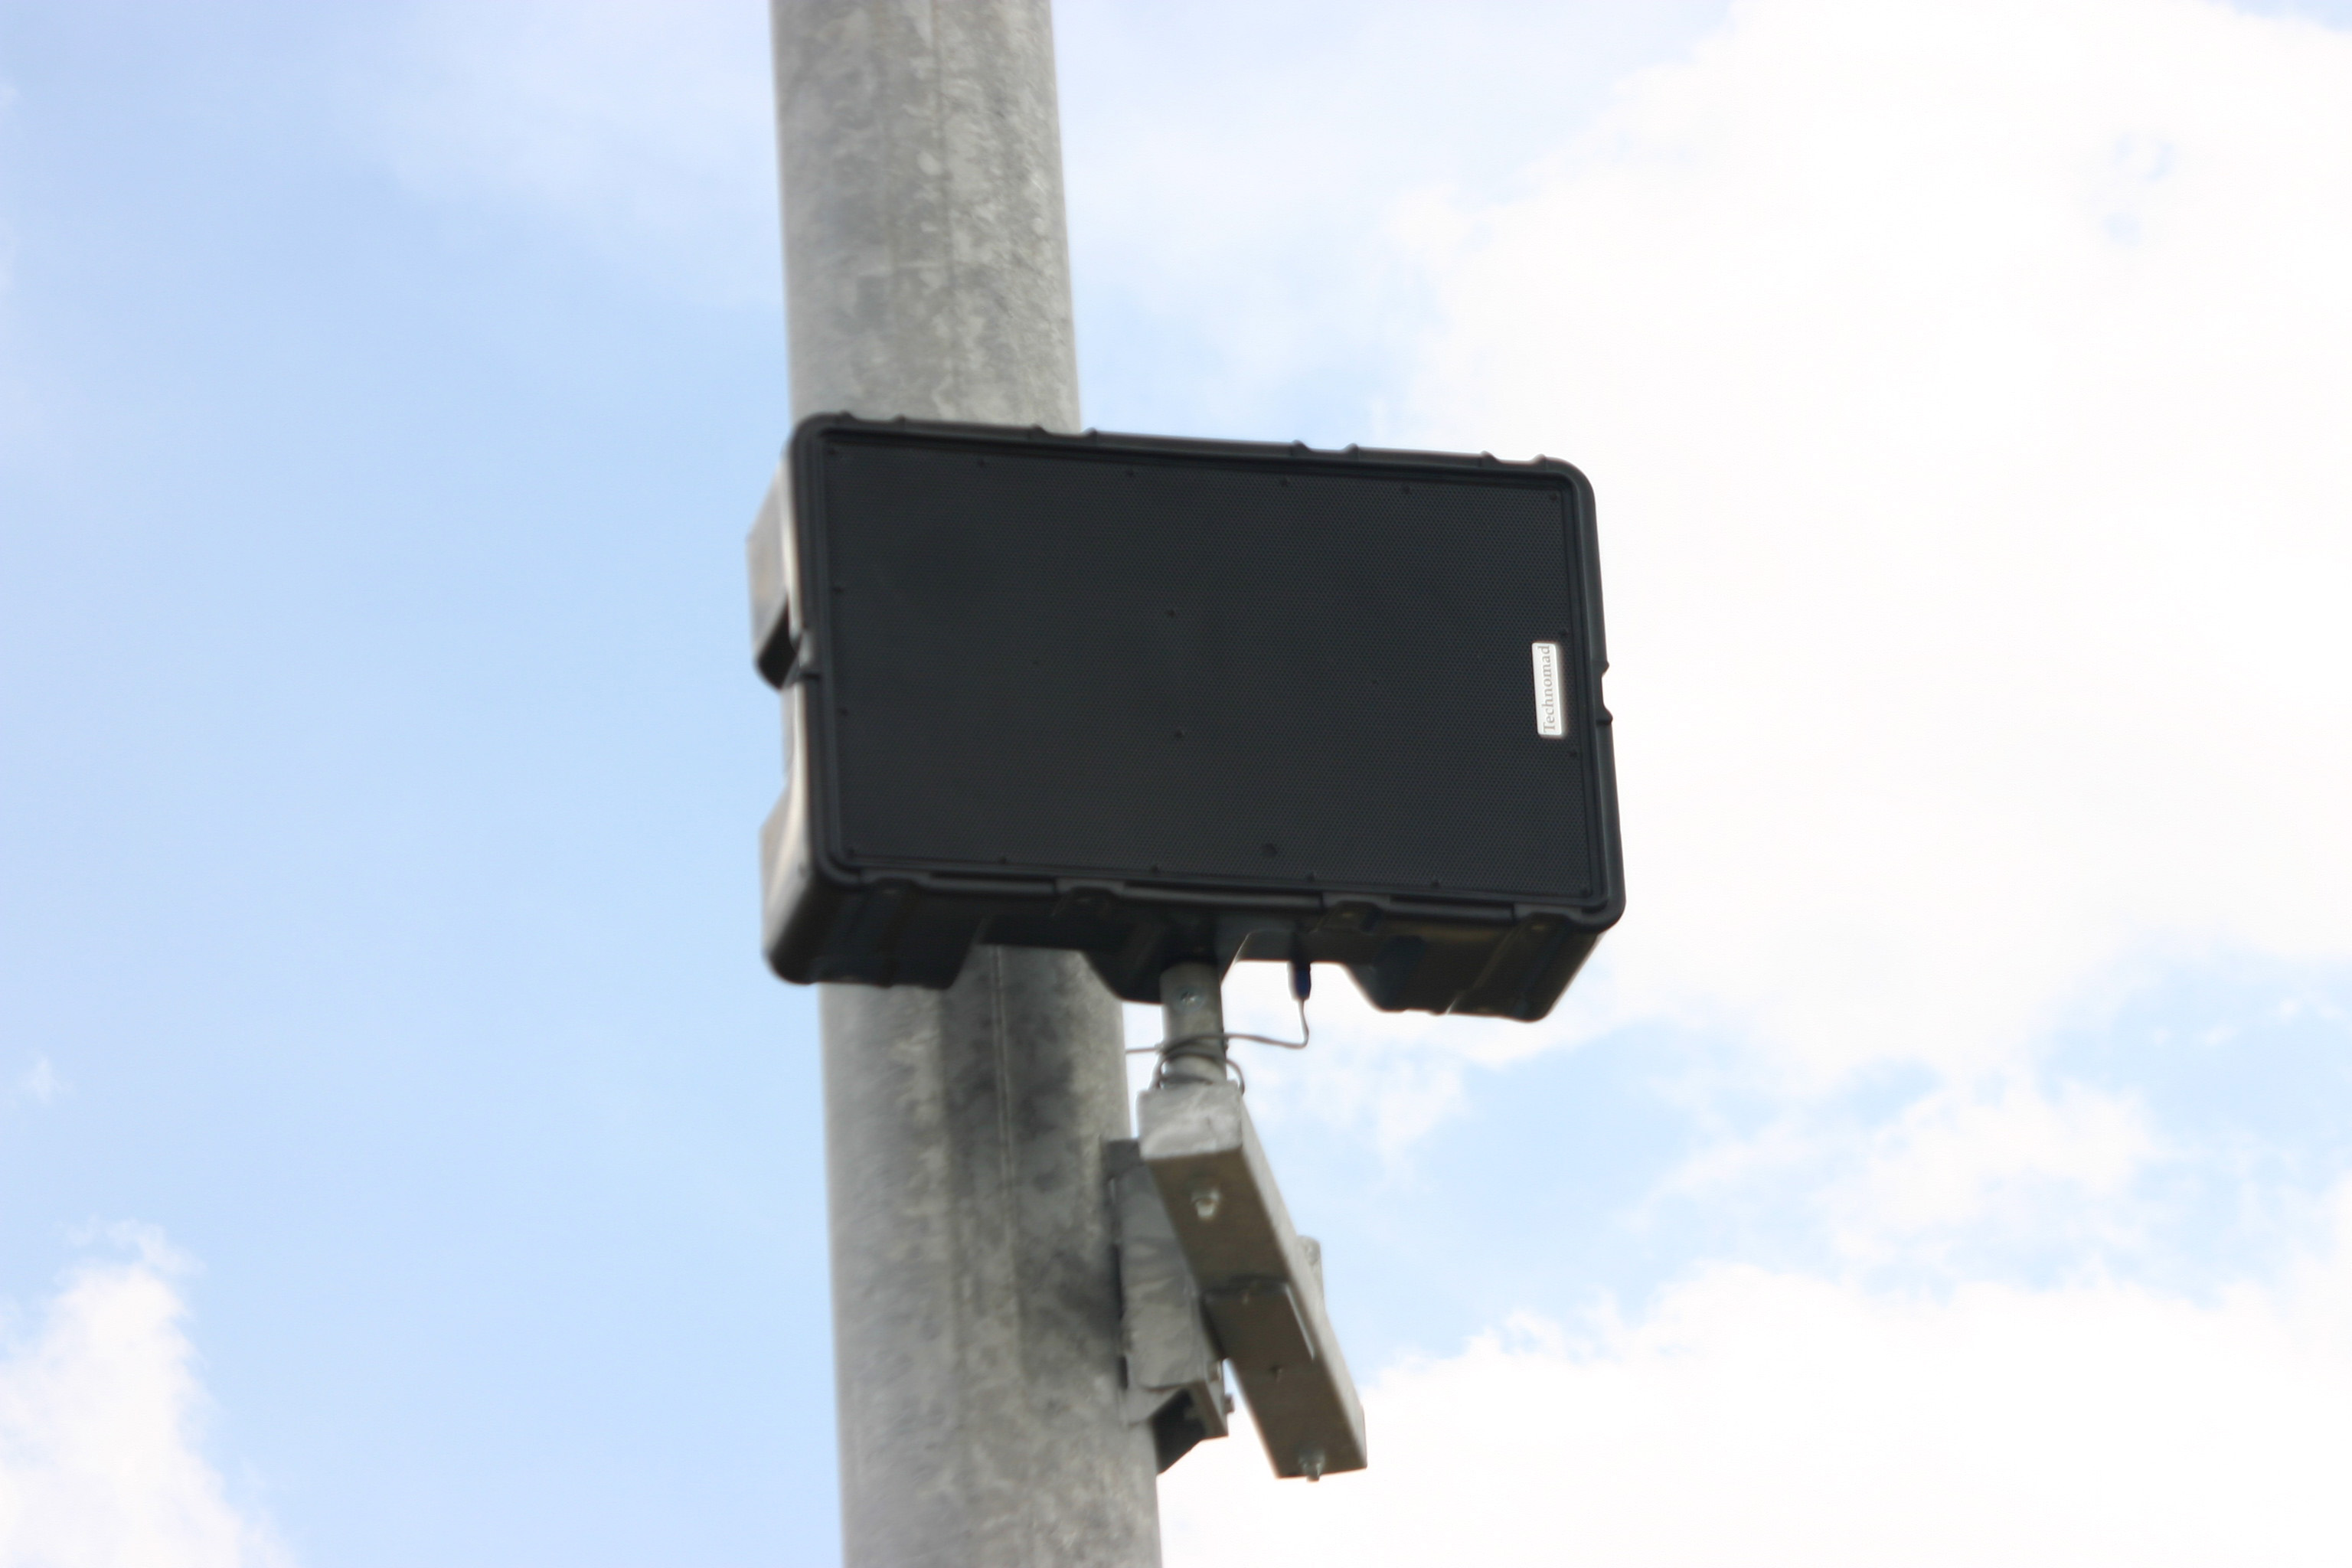 A Technomad Berlin loudspeaker installed on a light pole outdoors and unprotected from the elements